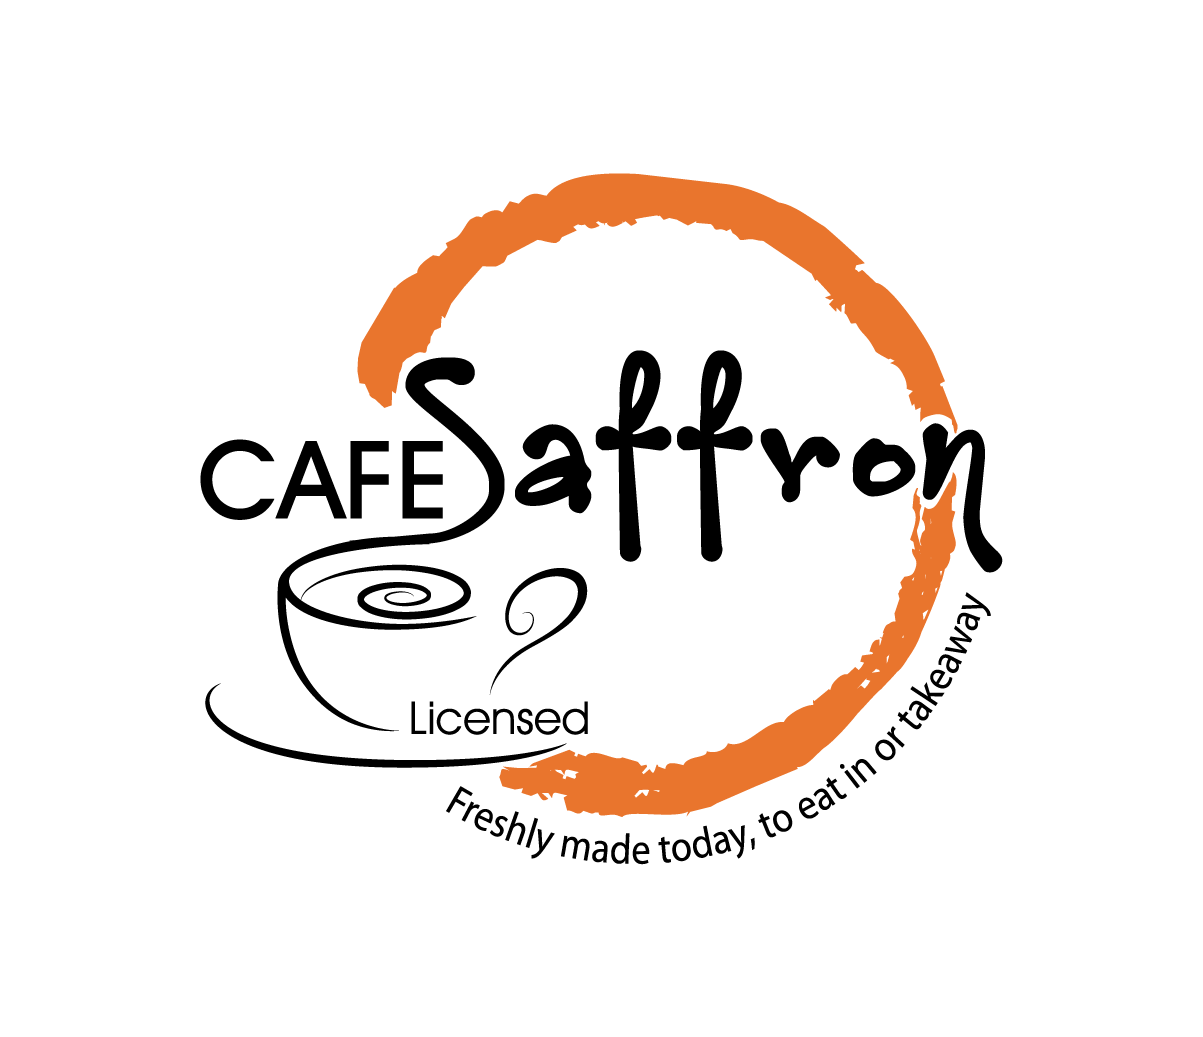 New logo wanted for Cafe saffron